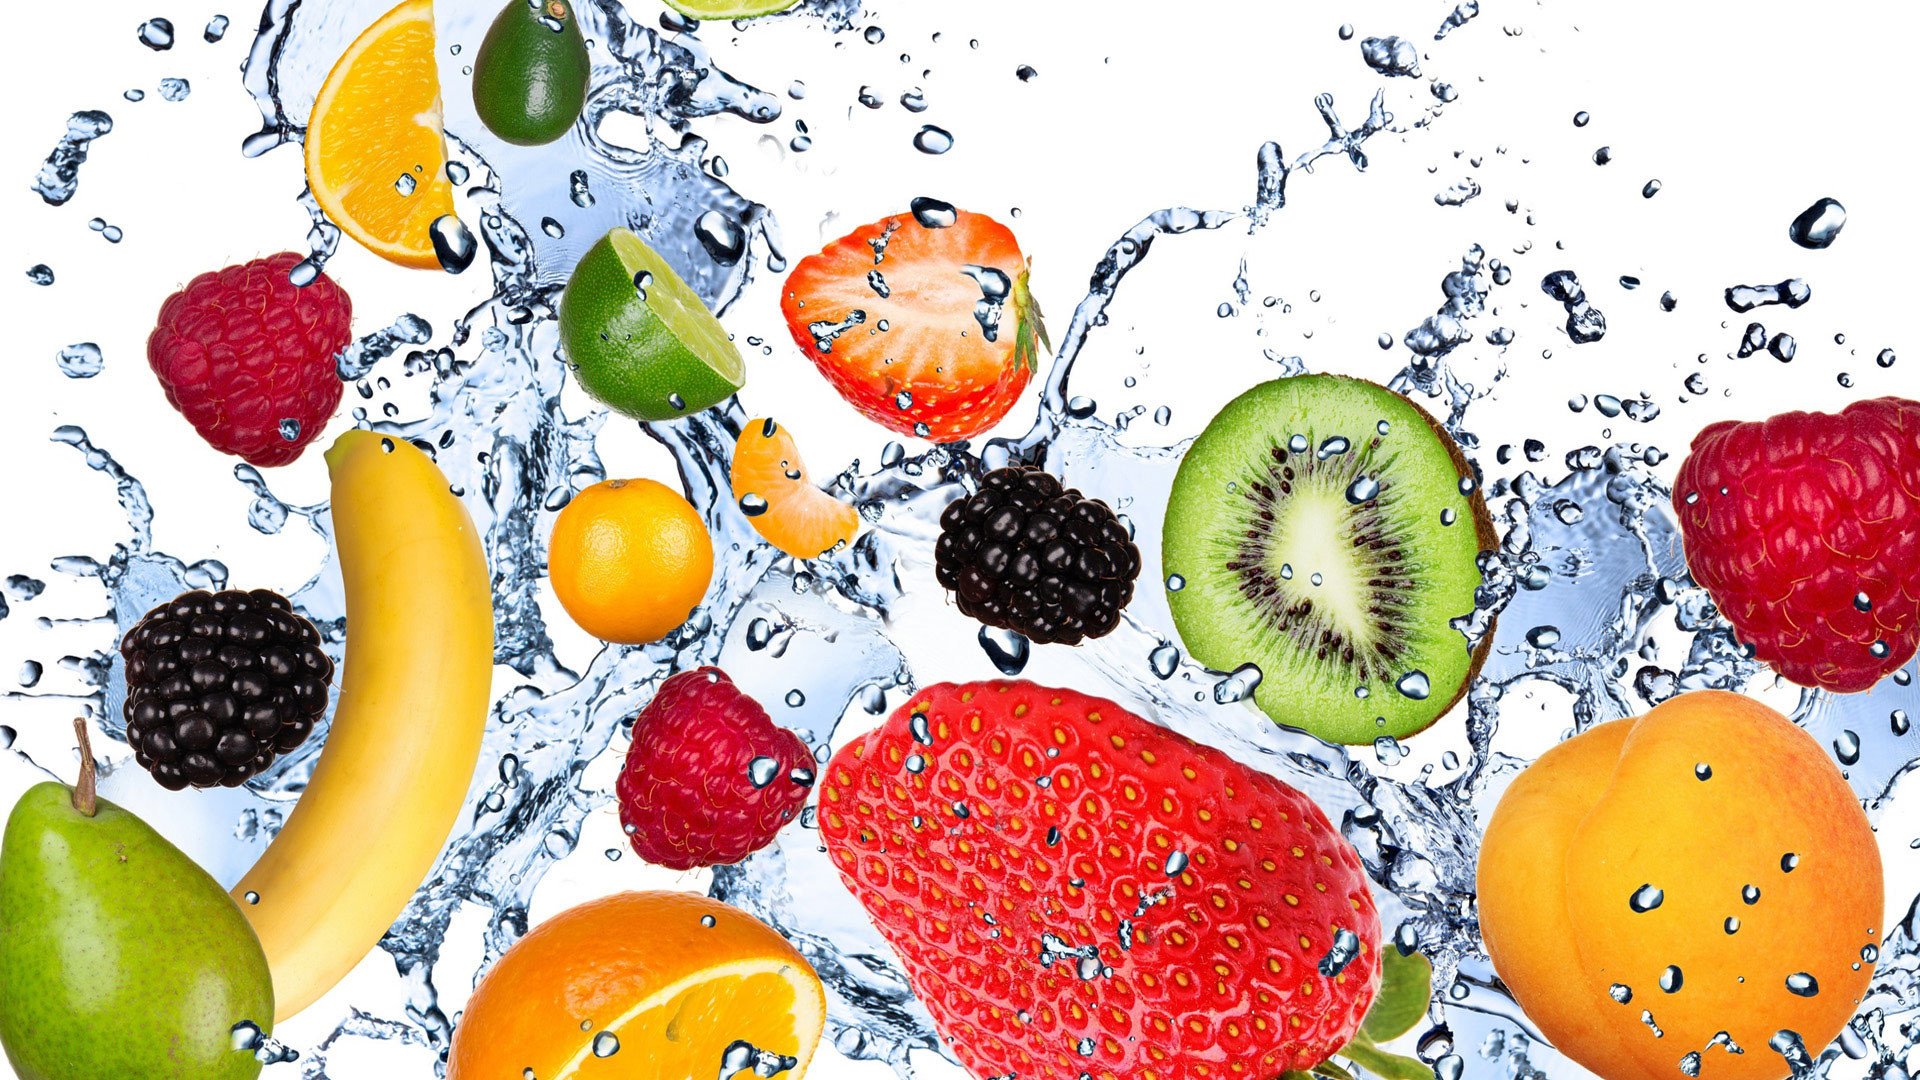 hd pics photos fruits fresh water slpash desktop background wallpaper